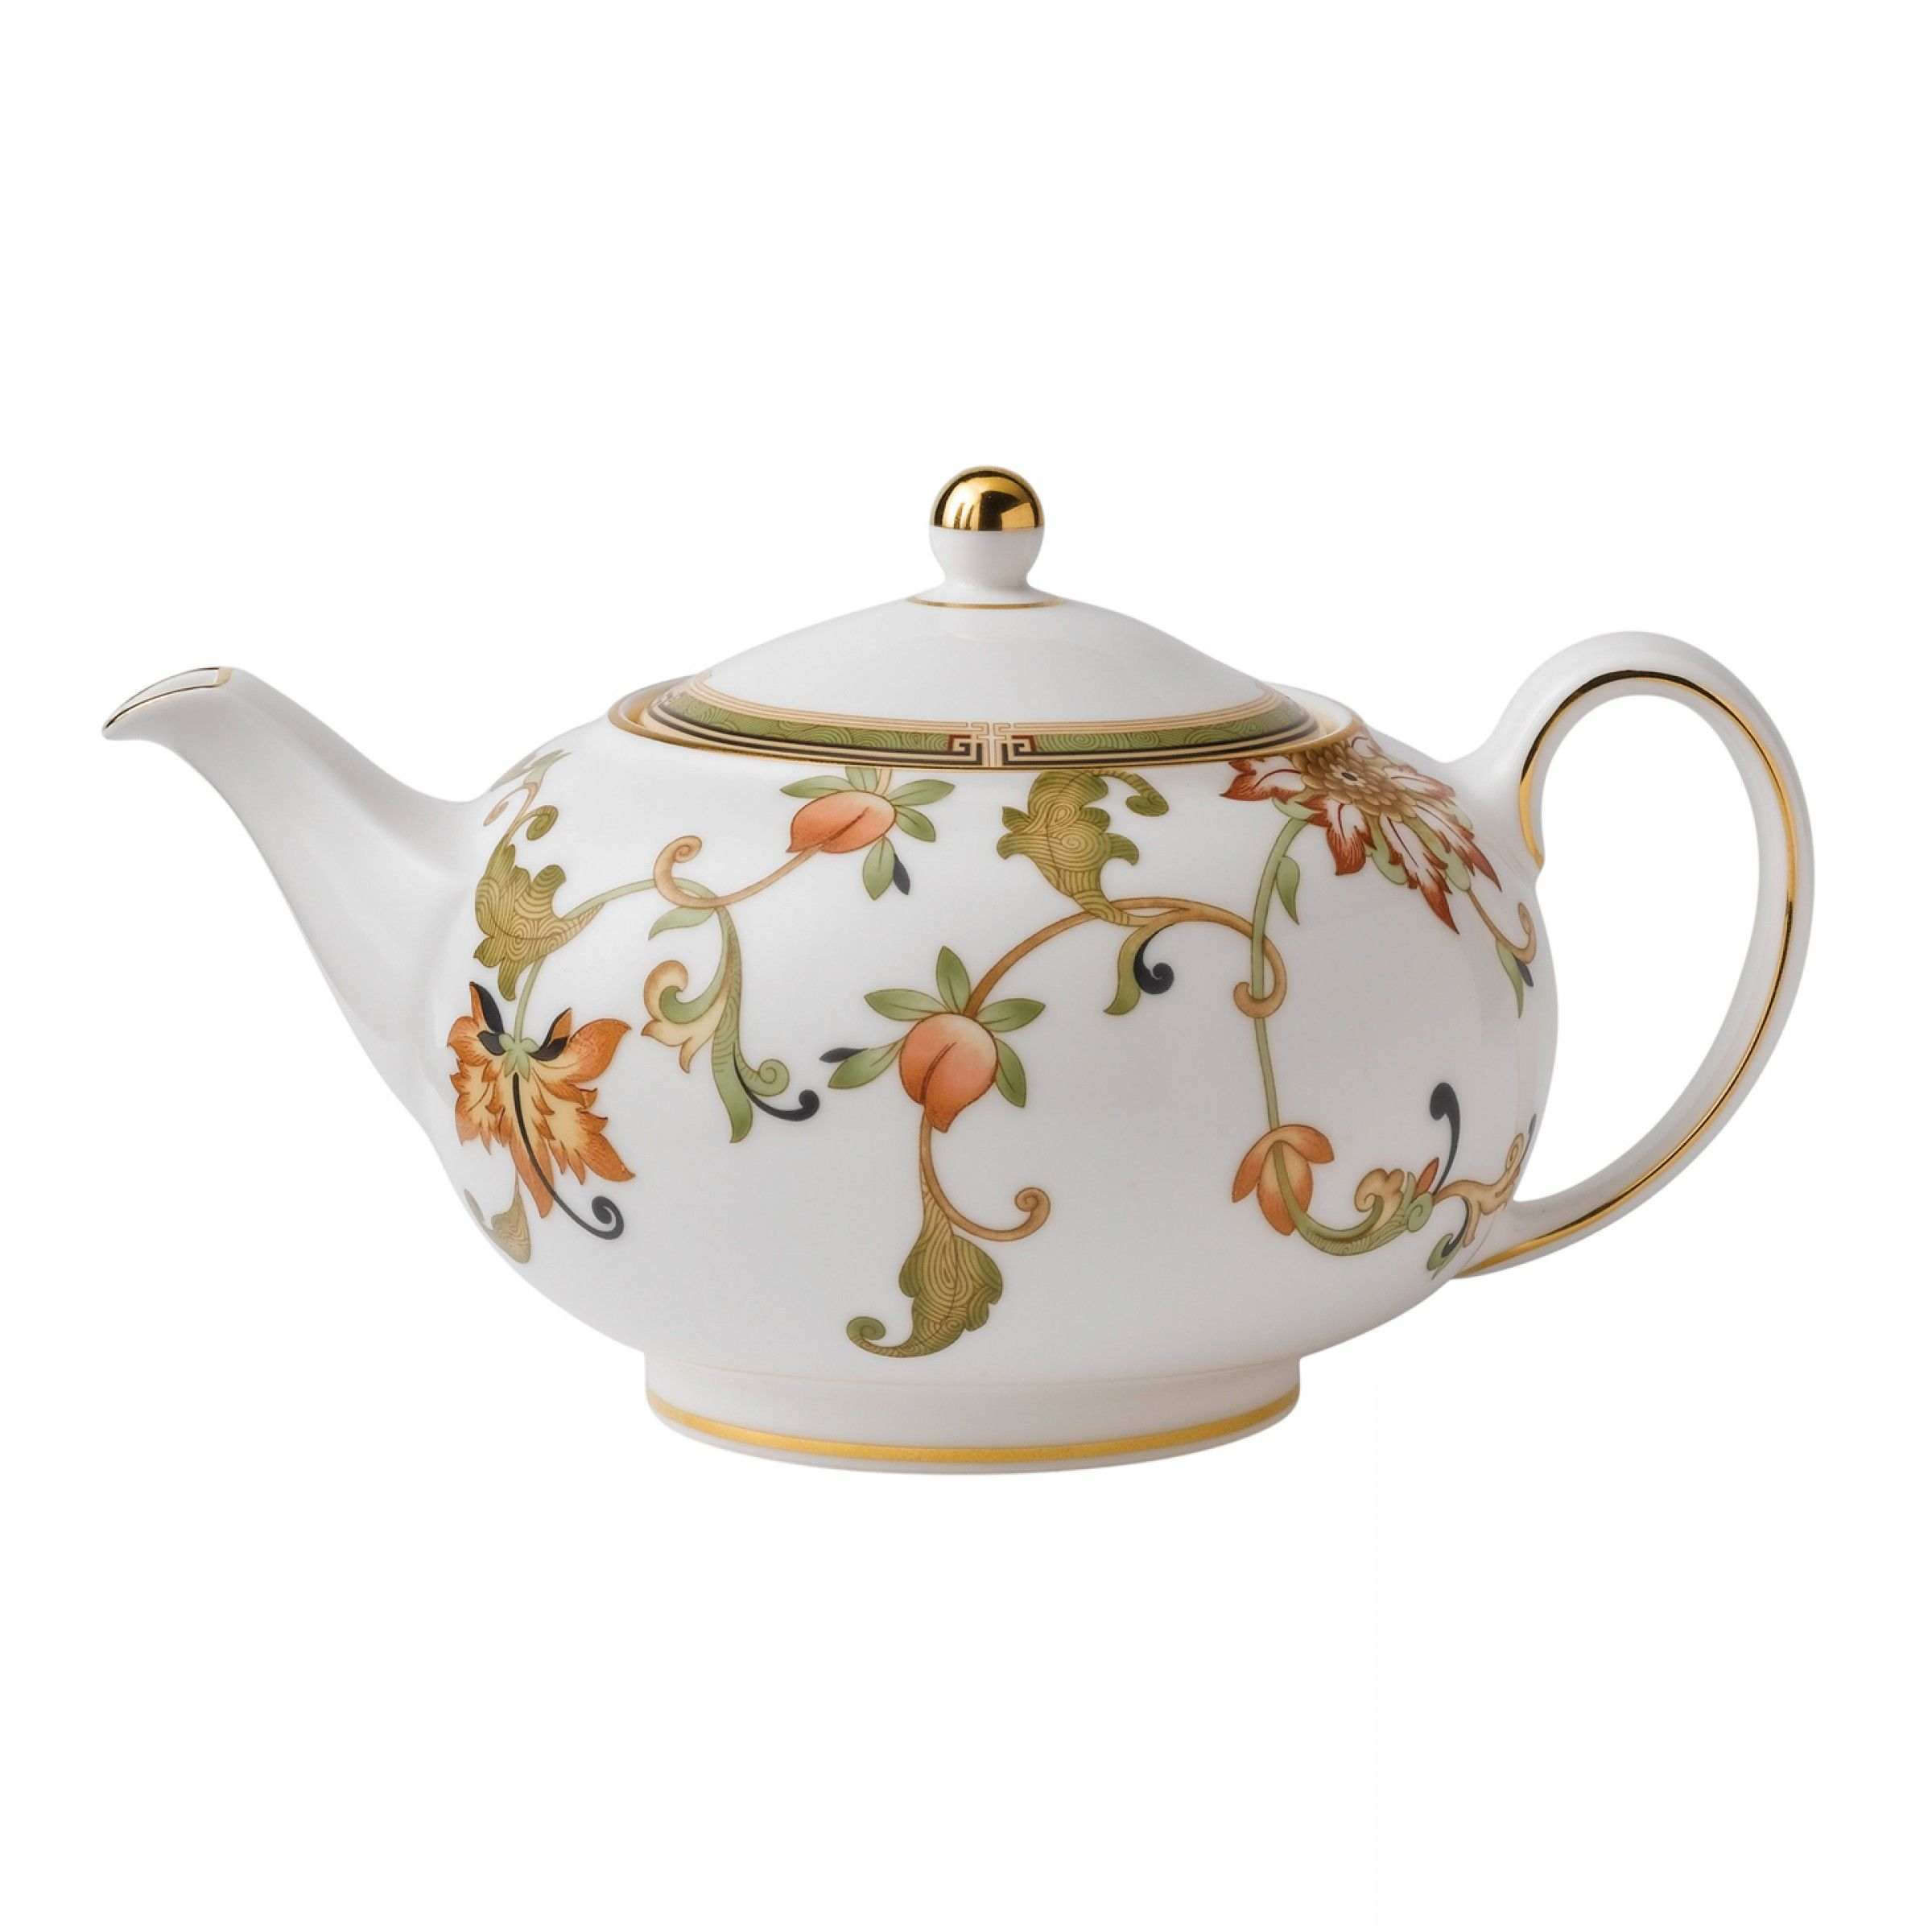 Oberon Teapot In 2020 With Images Tea Pots Tea Bone China Teapots